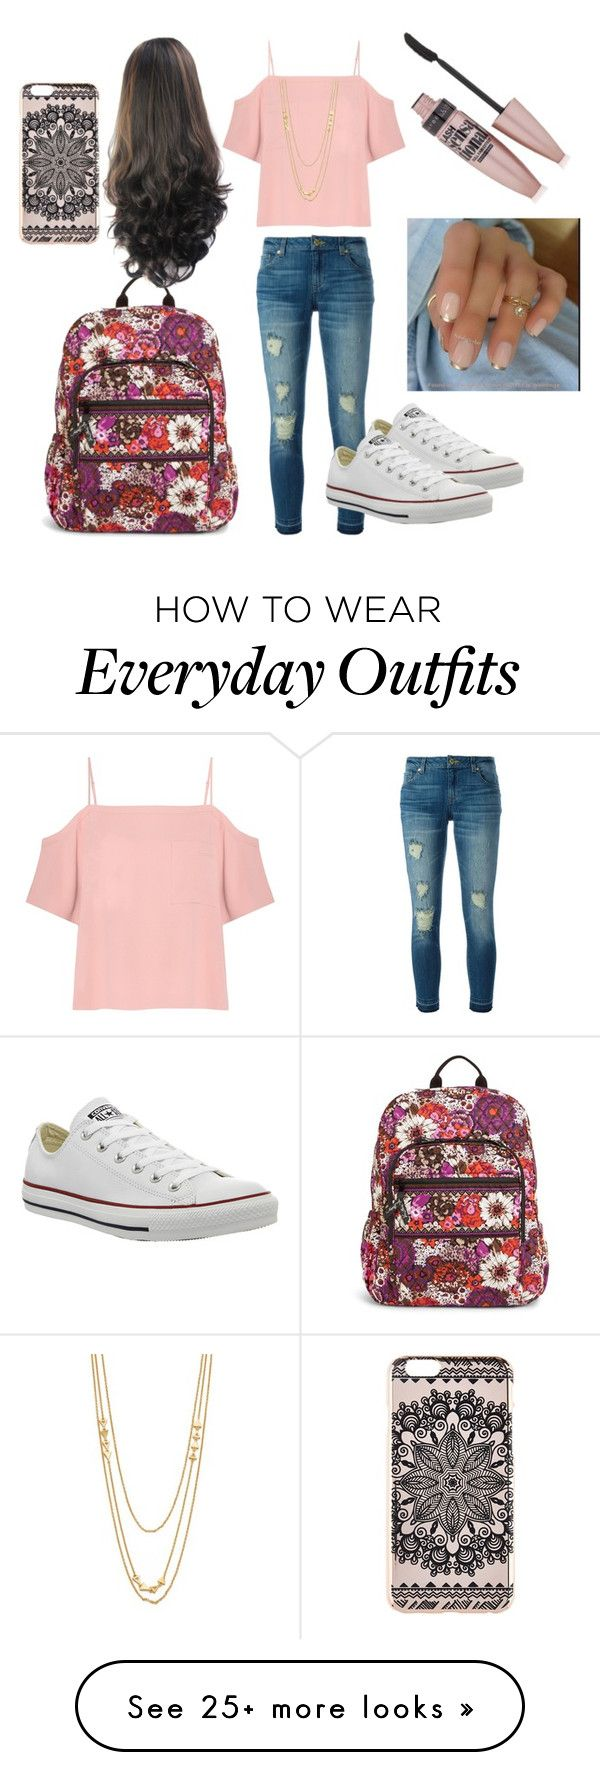 """Everyday school outfit"" by lilymahoney on Polyvore featuring MICHAEL Michael Kors, Converse, T By Alexander Wang, Gorjana, Vera Bradley, Maybelline and New Look"